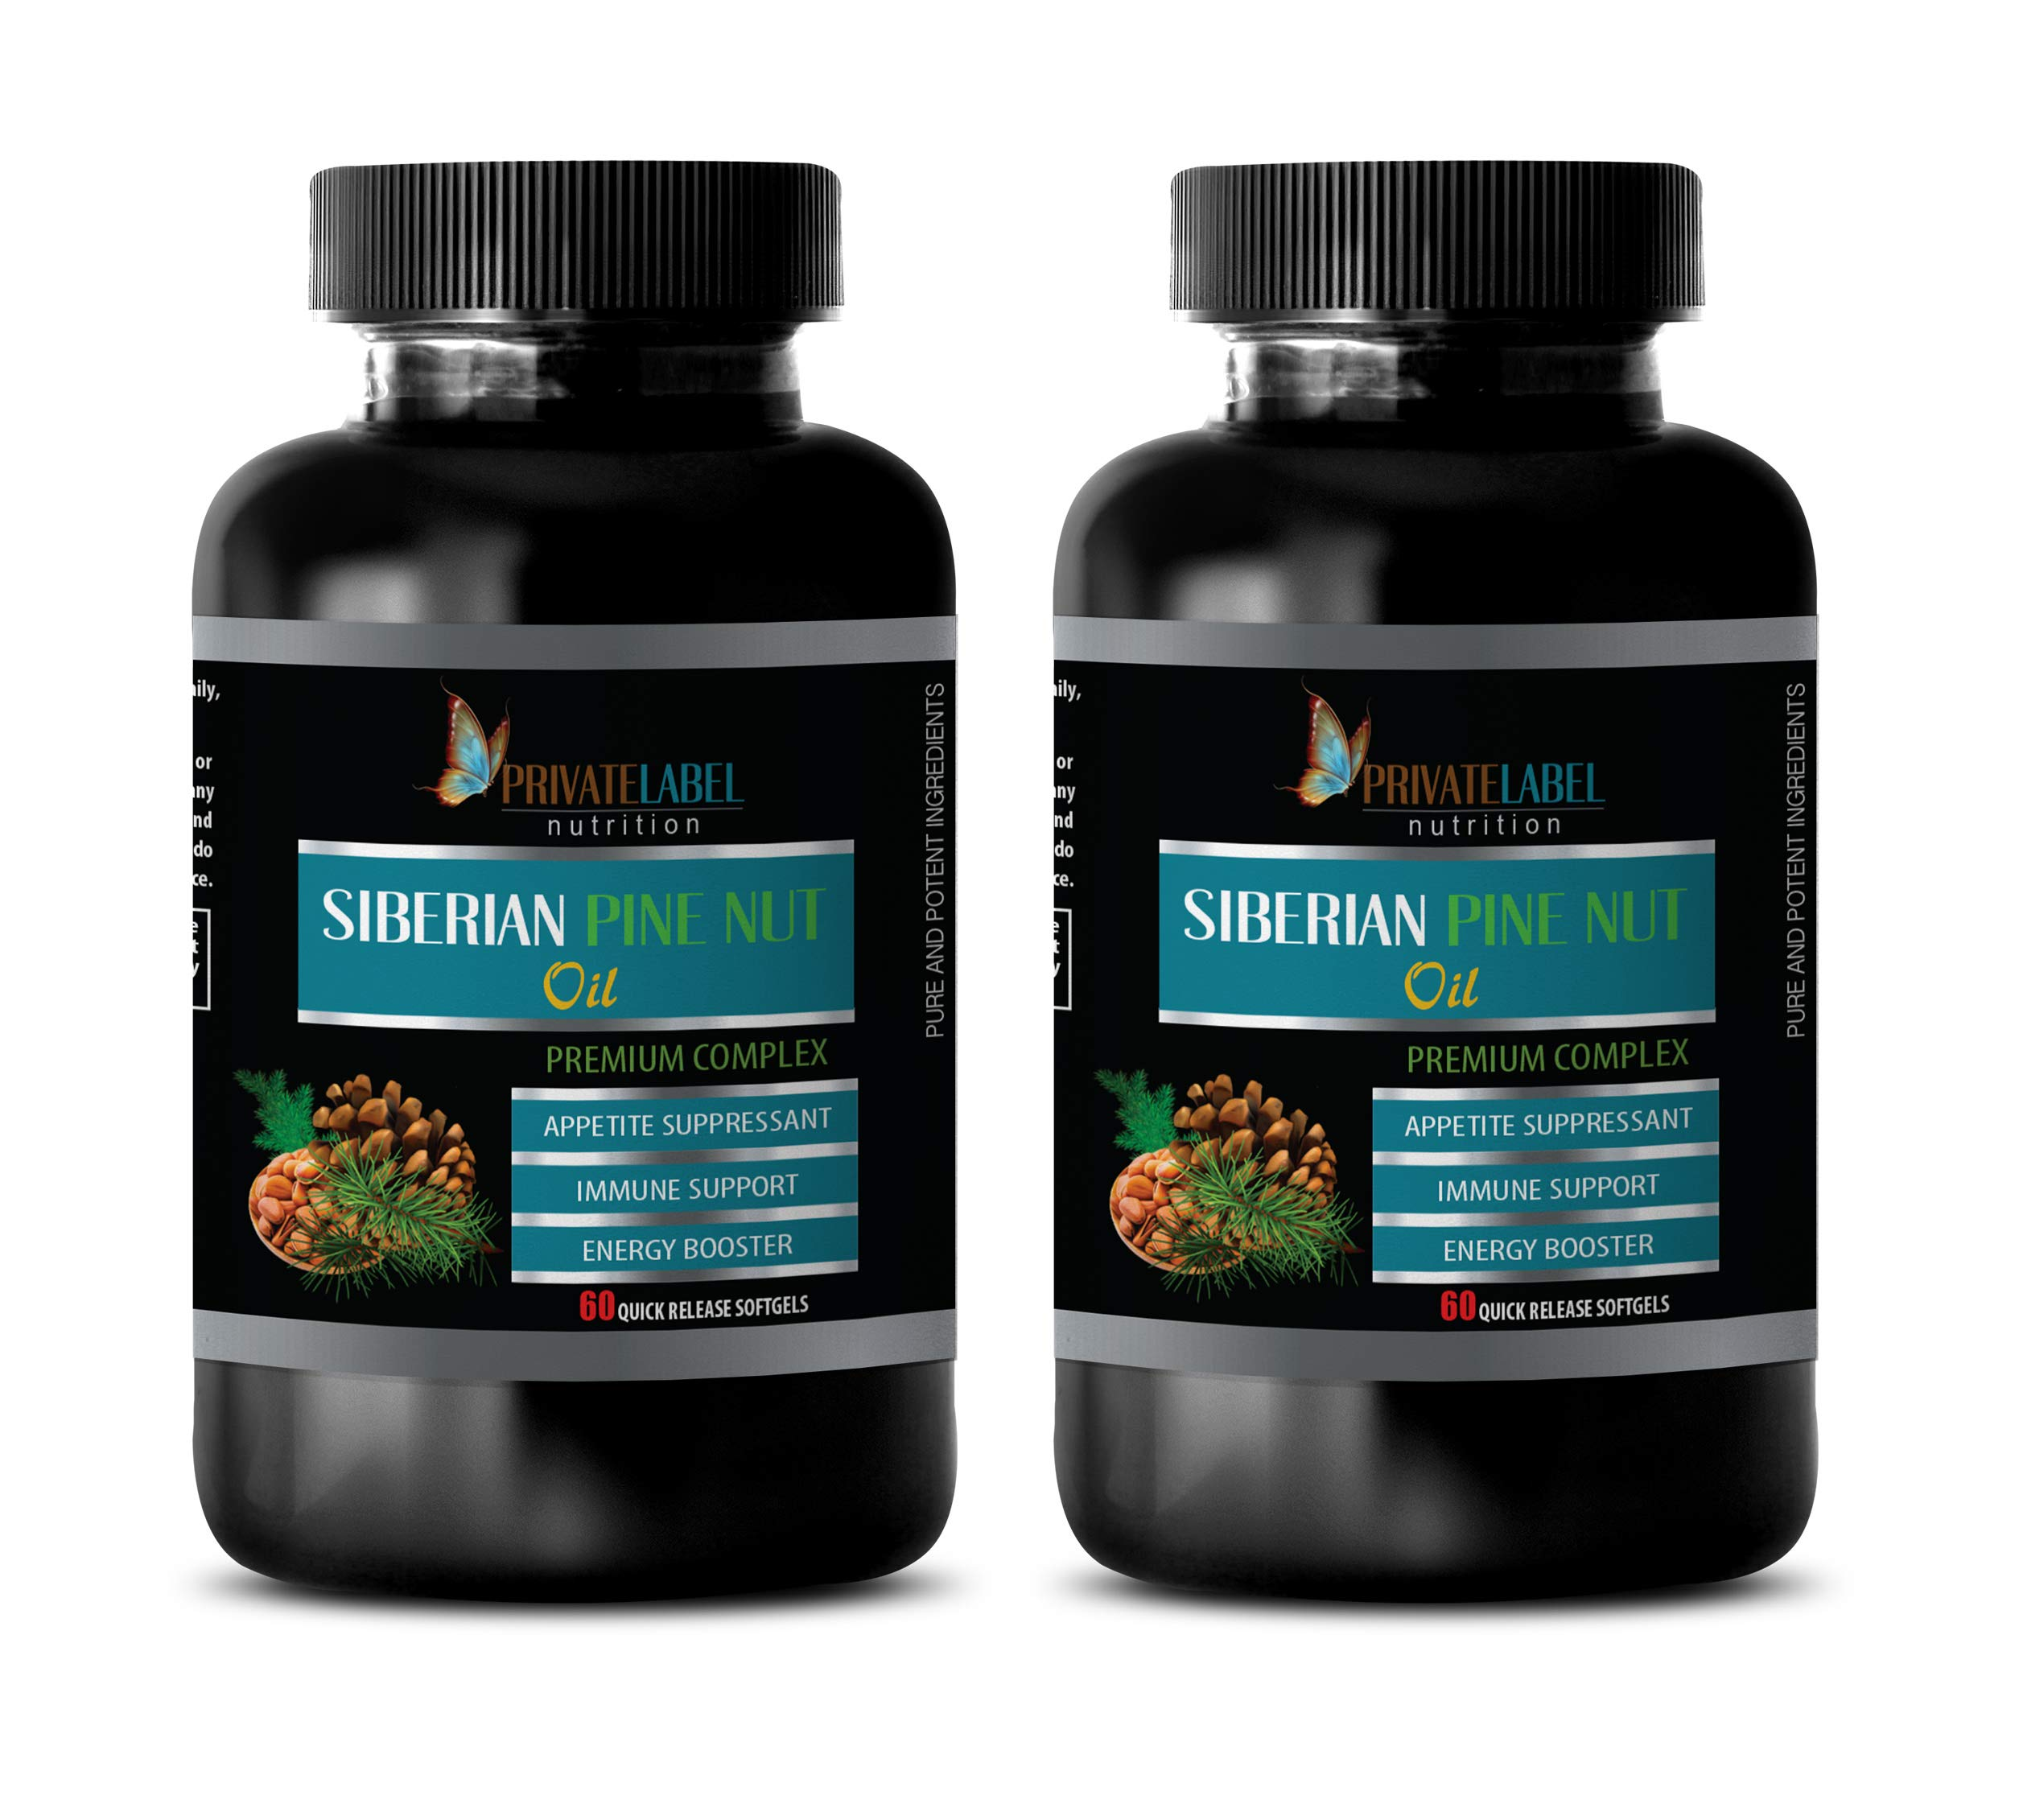 Immunity Essential Oils - Siberian Pine NUT Oil - Premium Complex - Immune Support Vitamins - 2 Bottles 120 Softgels